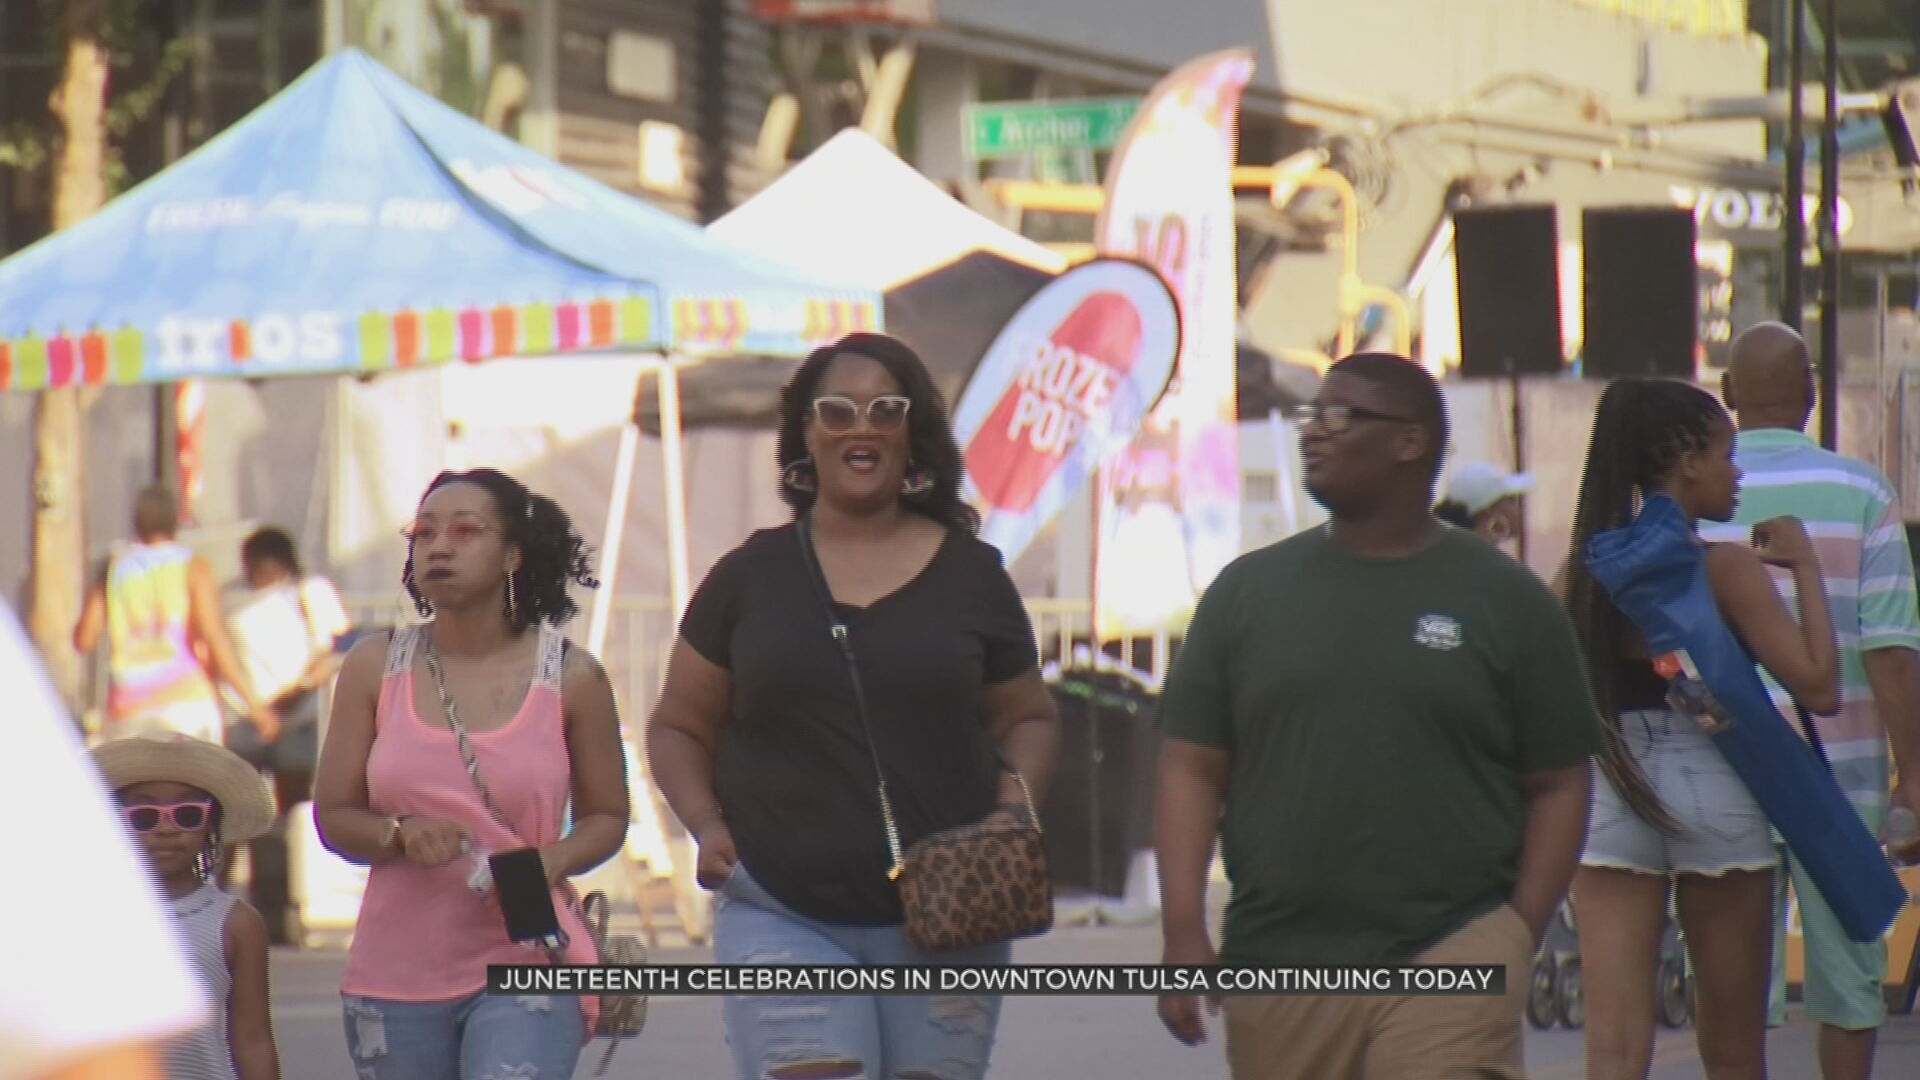 Full Day Of Festivities Lined Up To Celebrate Juneteenth In Tulsa